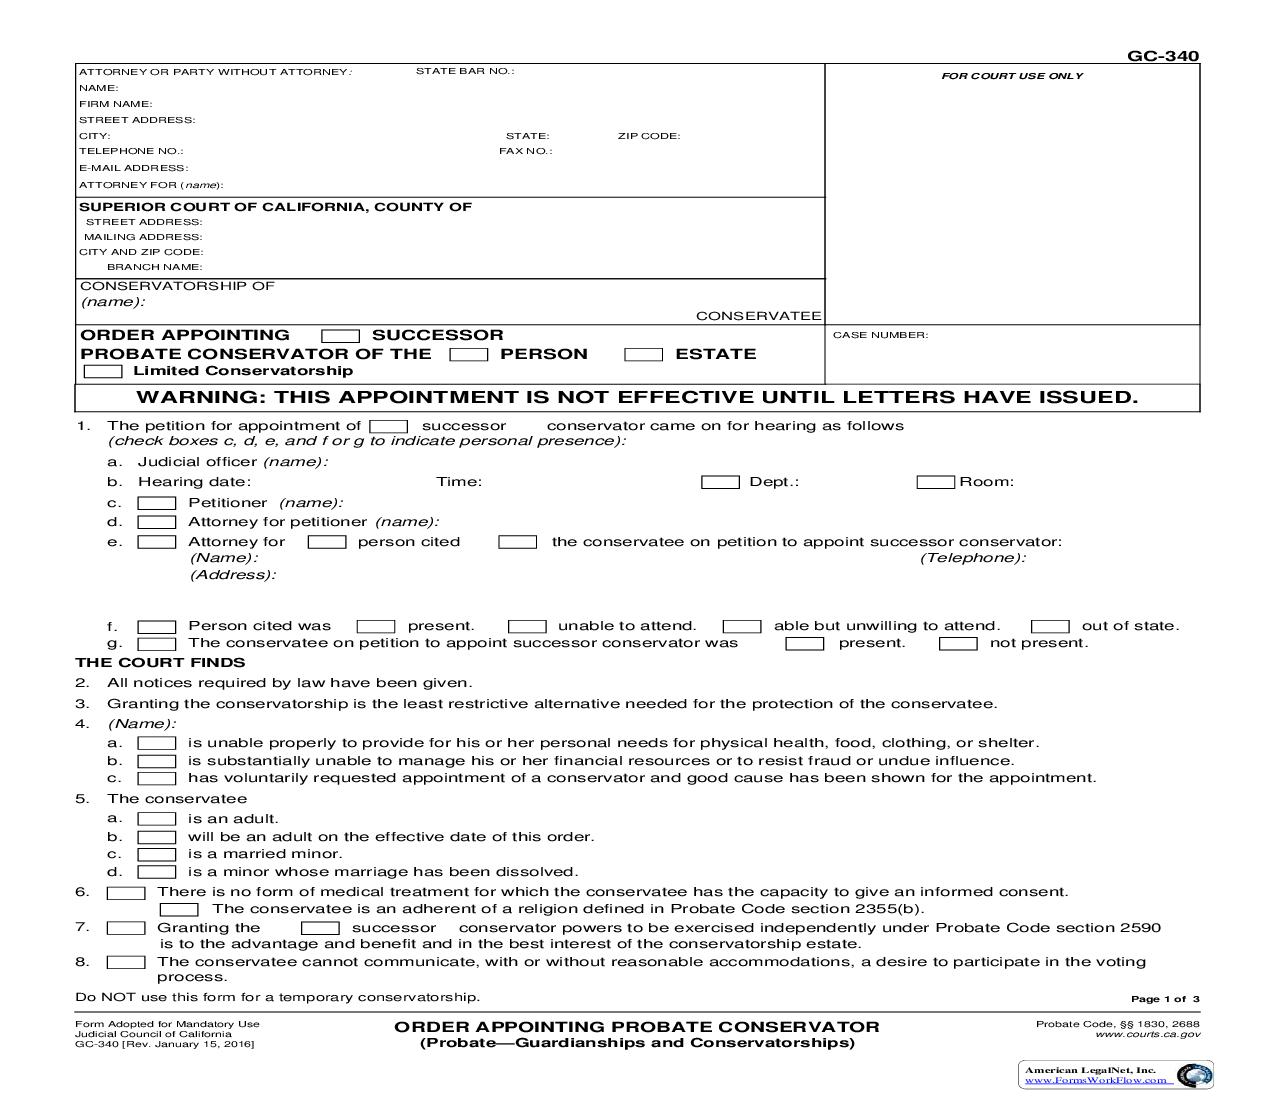 Order Appointing Probate Conservator (Probate-Guardianships And Conservatorships) {GC-340}   Pdf Fpdf Doc Docx   California